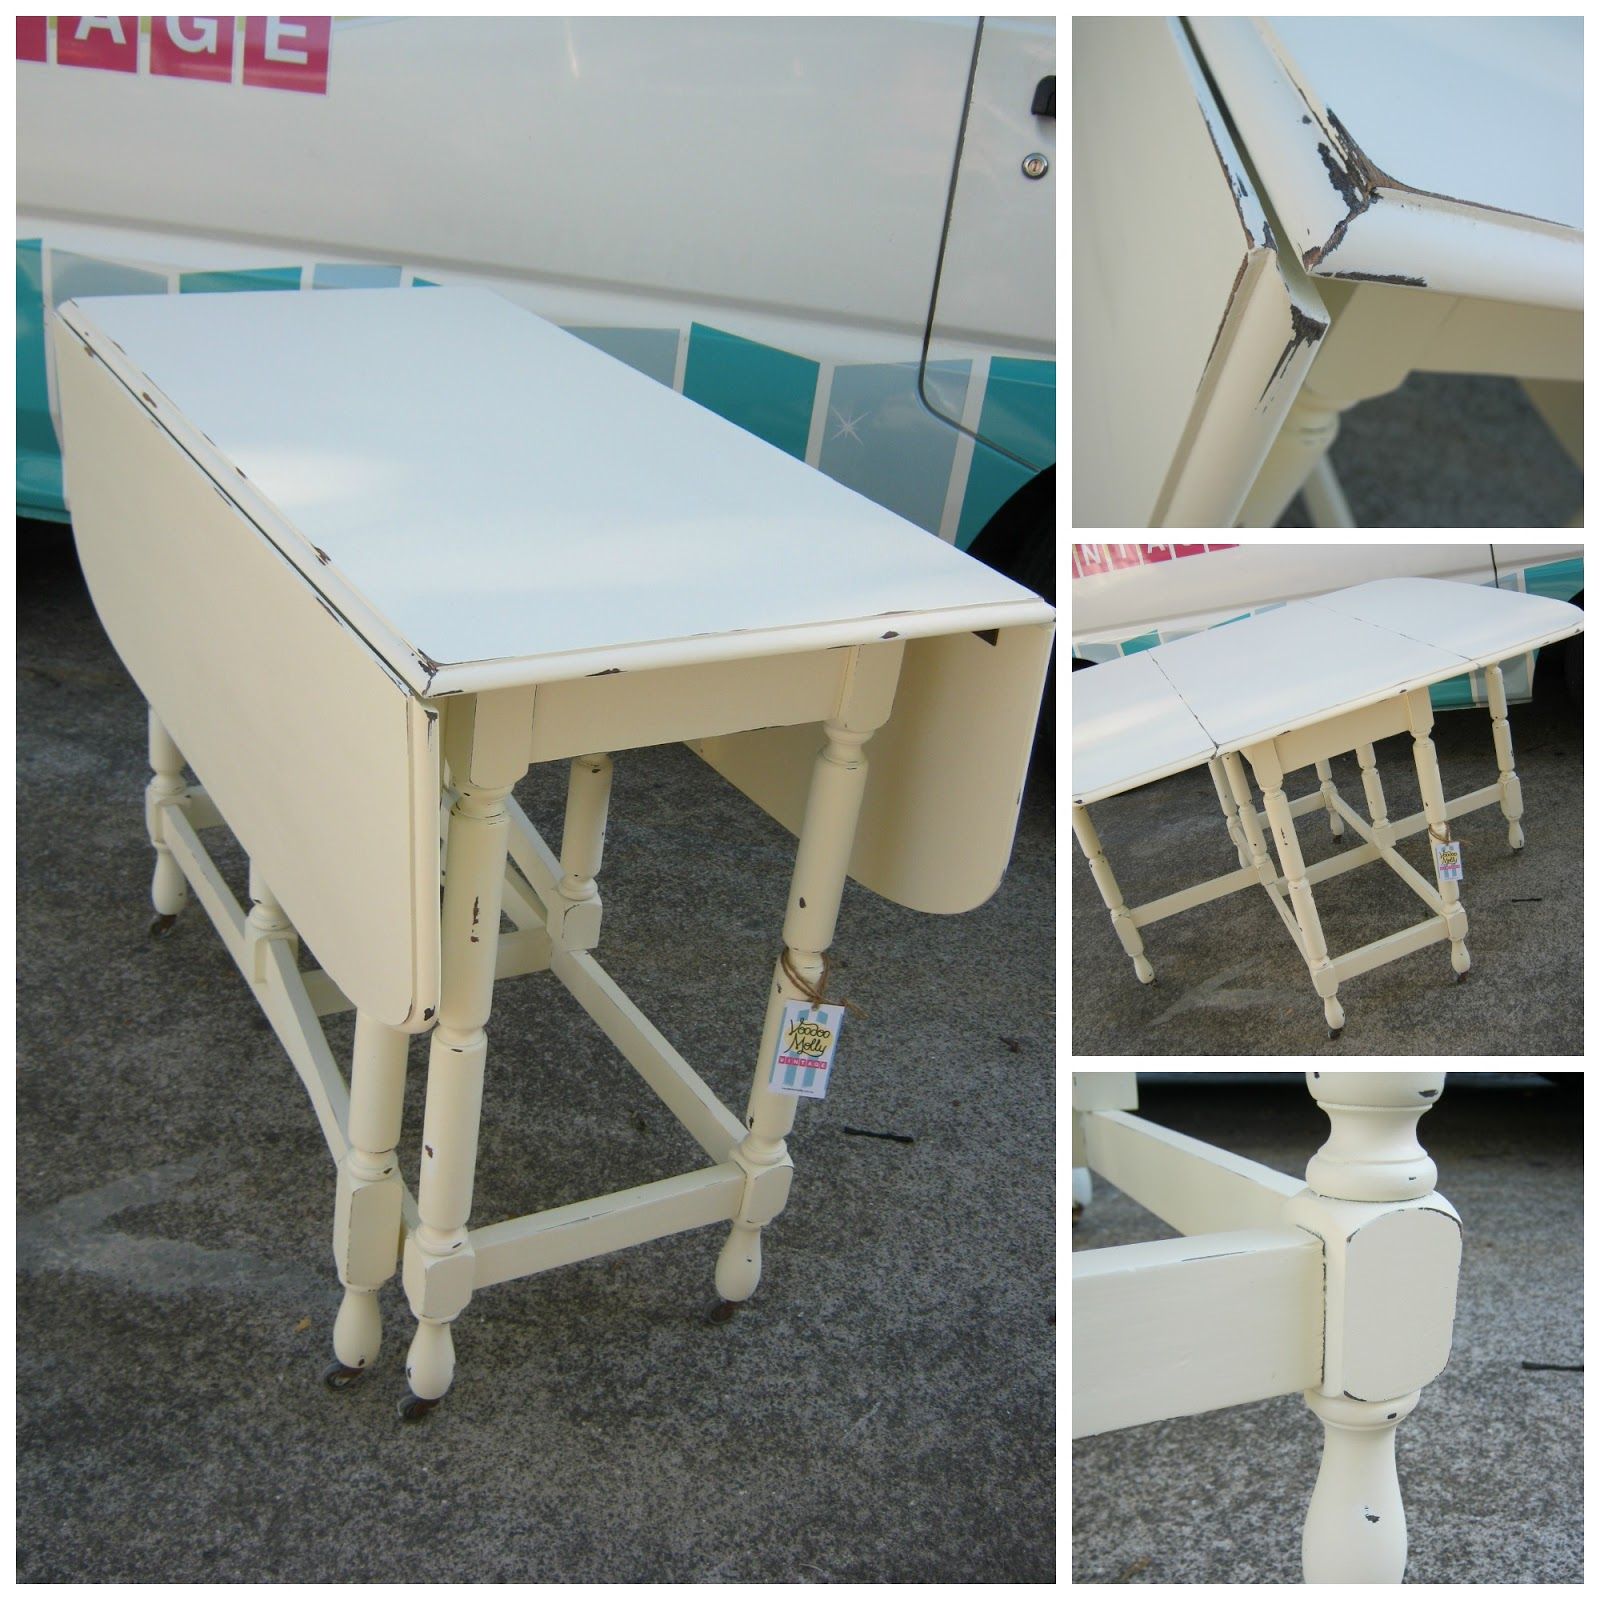 Hints for painting tables